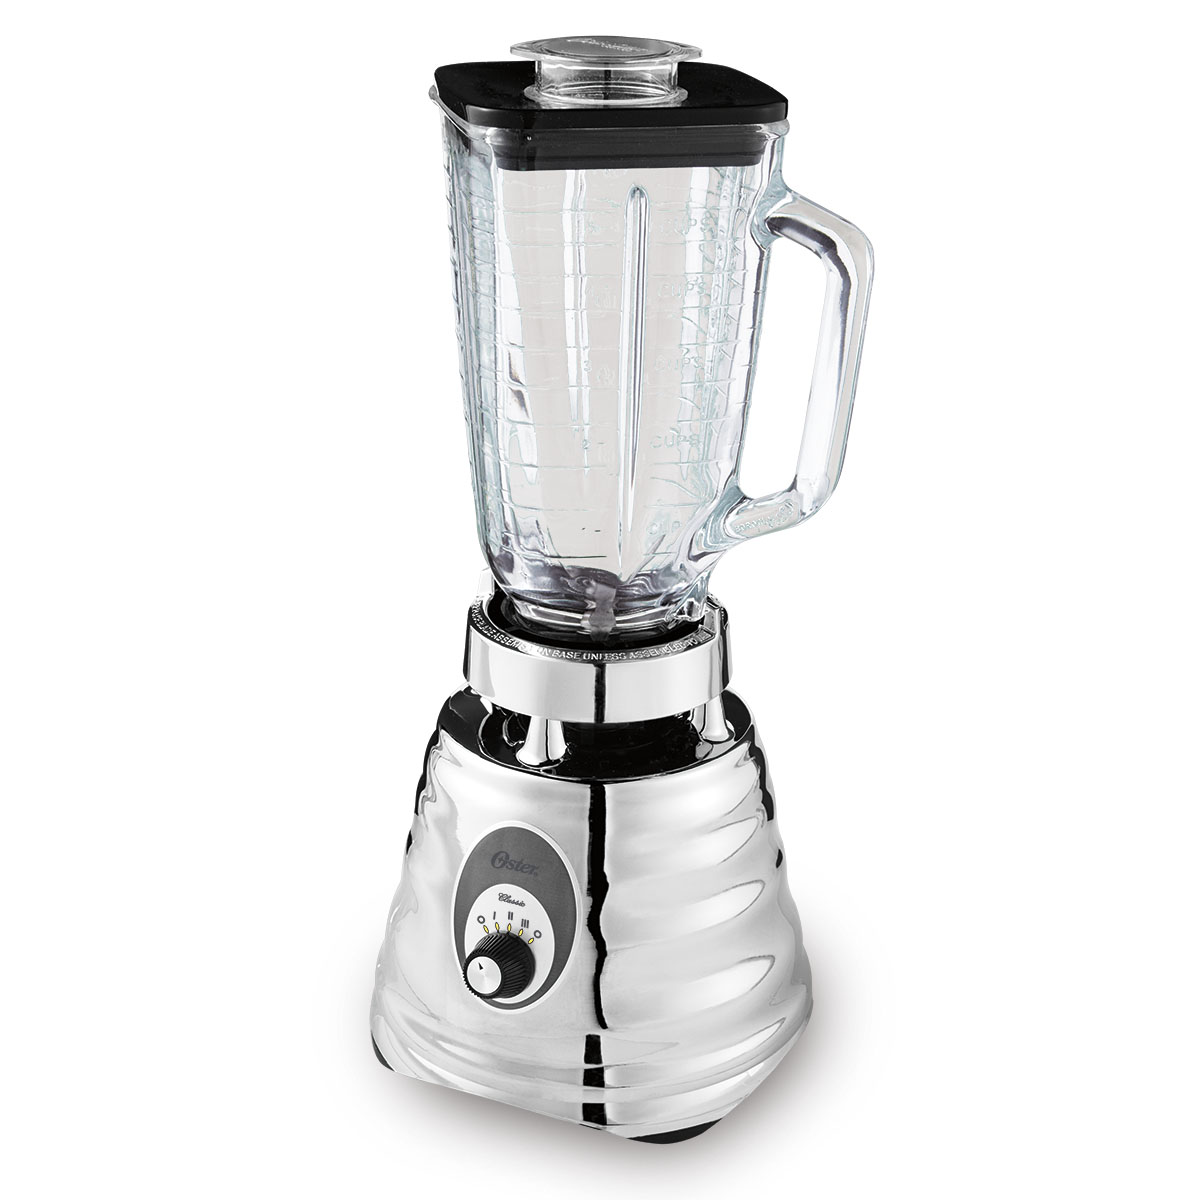 Oster 174 Classic Series Kitchen Center Blender At Oster Ca